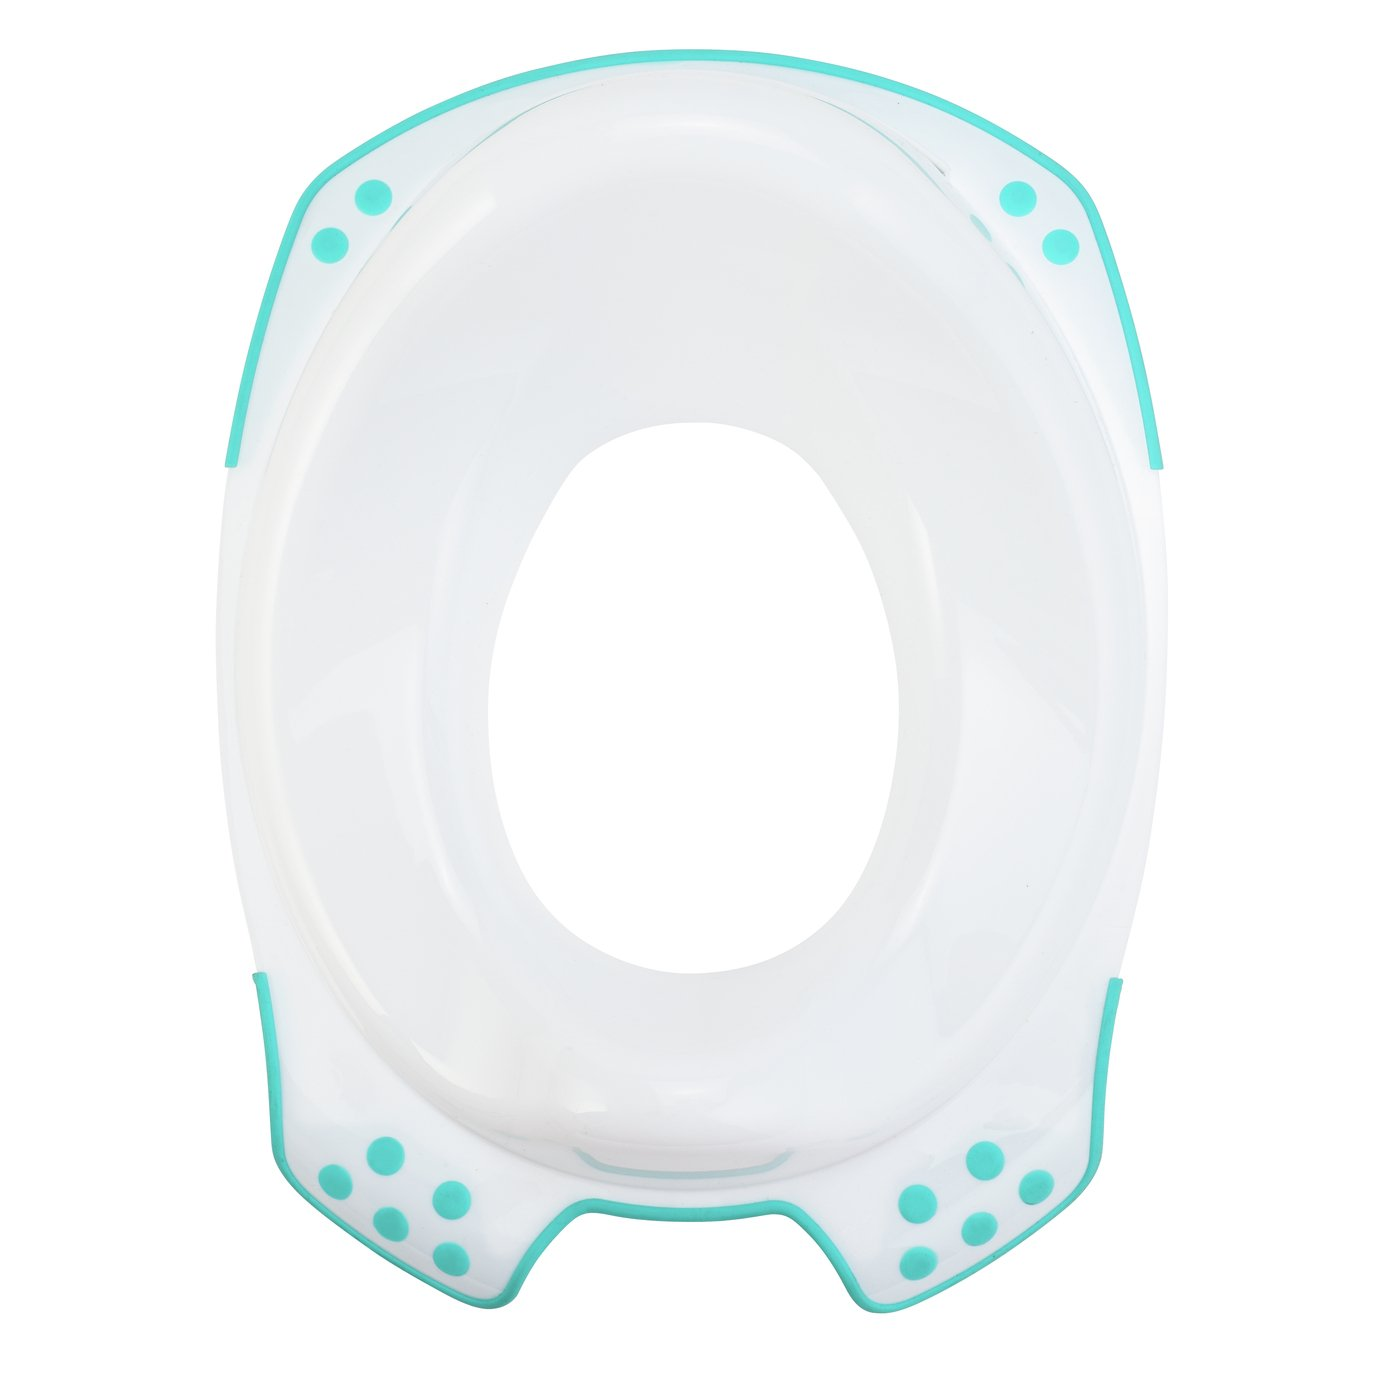 Glenmore Baby Toliet Potty Mini Toilet Shaped Like Pottys Soft Cushioned with Lid for Kids Boys Girls Green